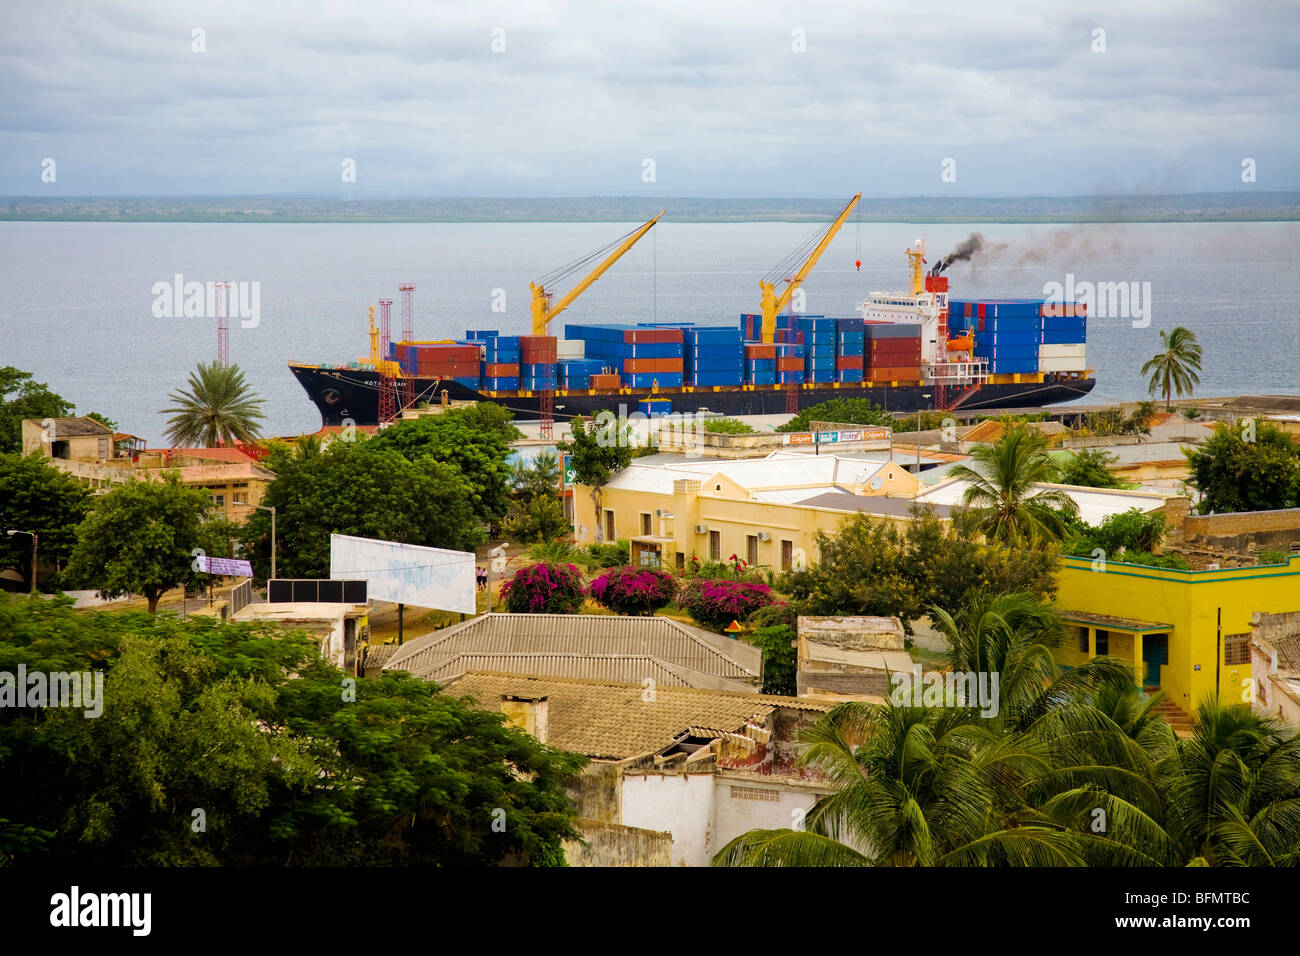 Mozambique, Pemba. Pemba is the capital of the Cabo Delgado Province in the North of Mozambique. Stock Photo